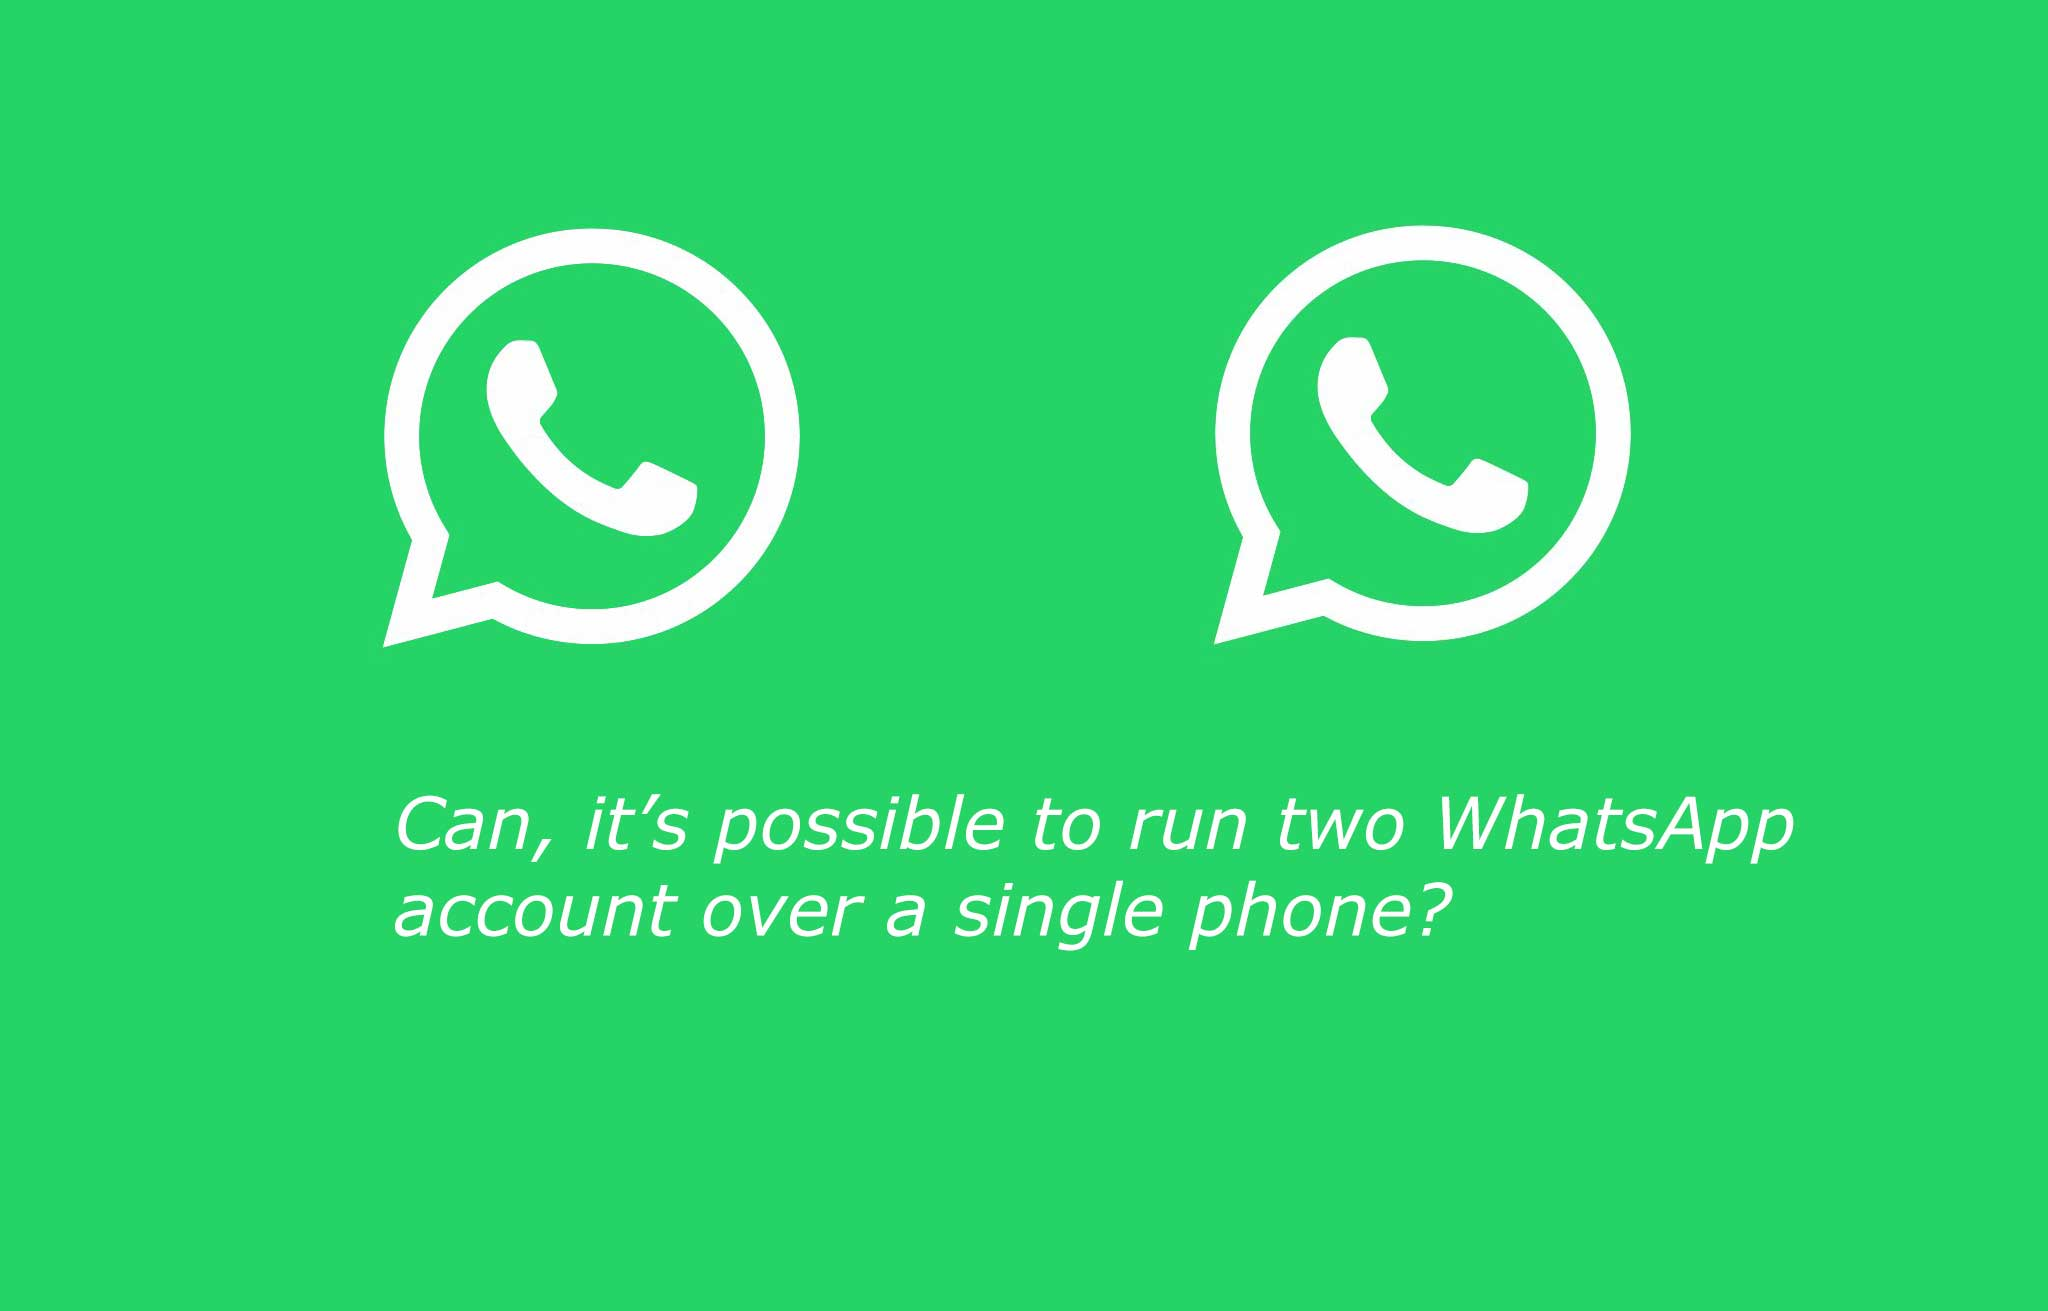 Can, it's possible to run two WhatsApp account over a single phone?